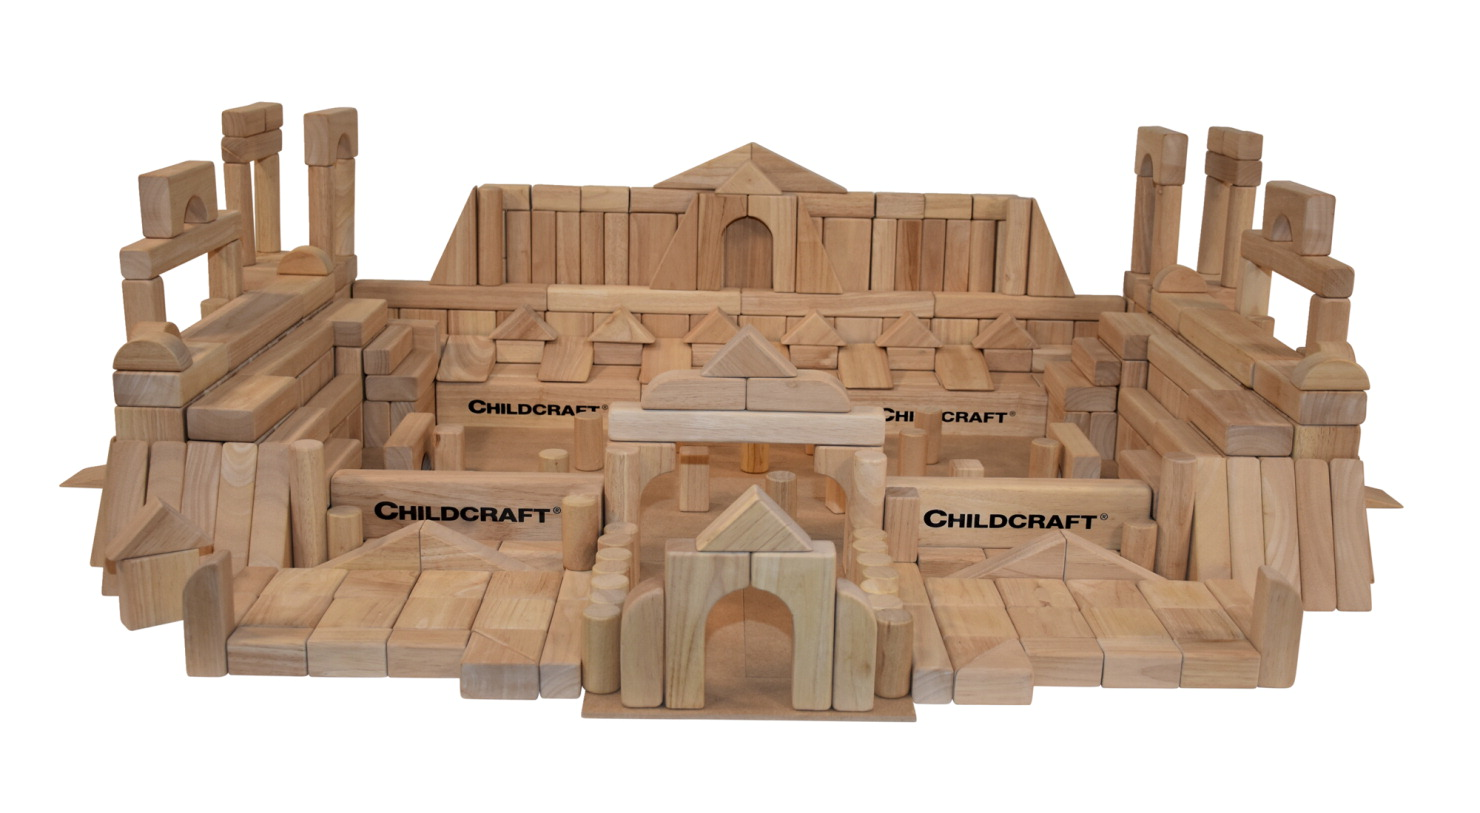 Childcraft Standard Unit Block Set, Set of 480